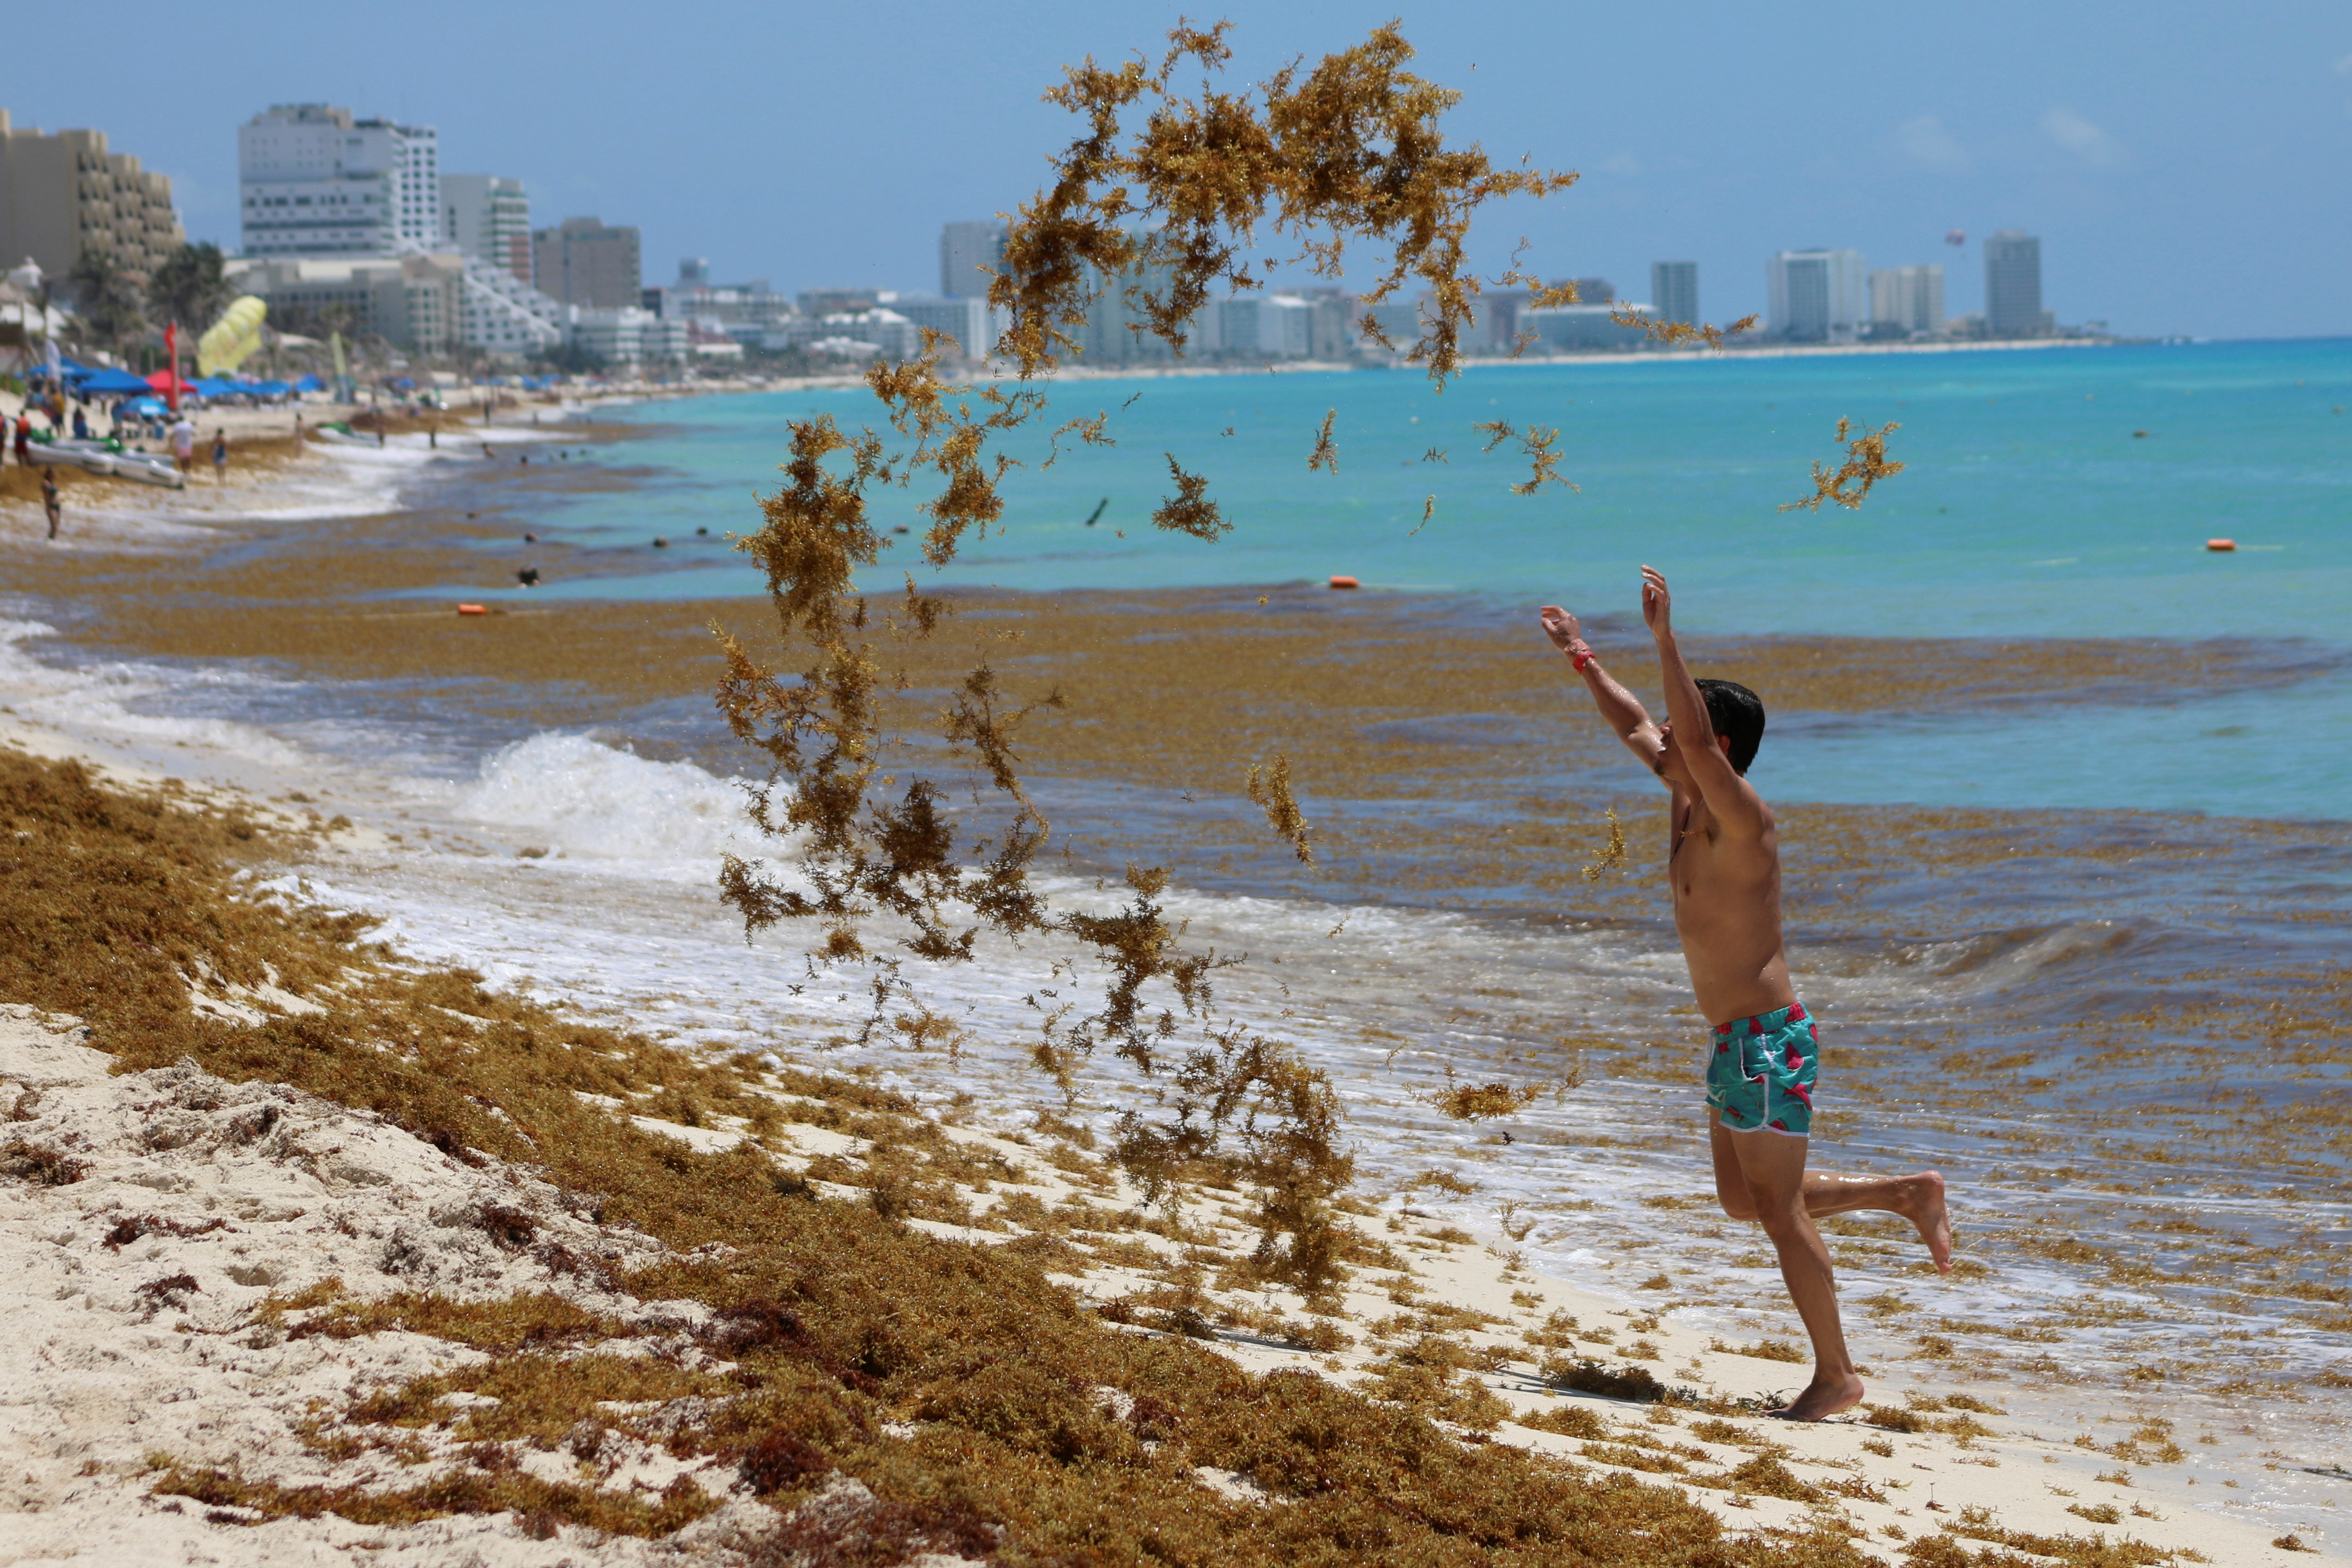 A tourist tosses sargassum into the air at Marlin Beach in Cancun, Mexico May 30, 2021. REUTERS/Paola Chiomante